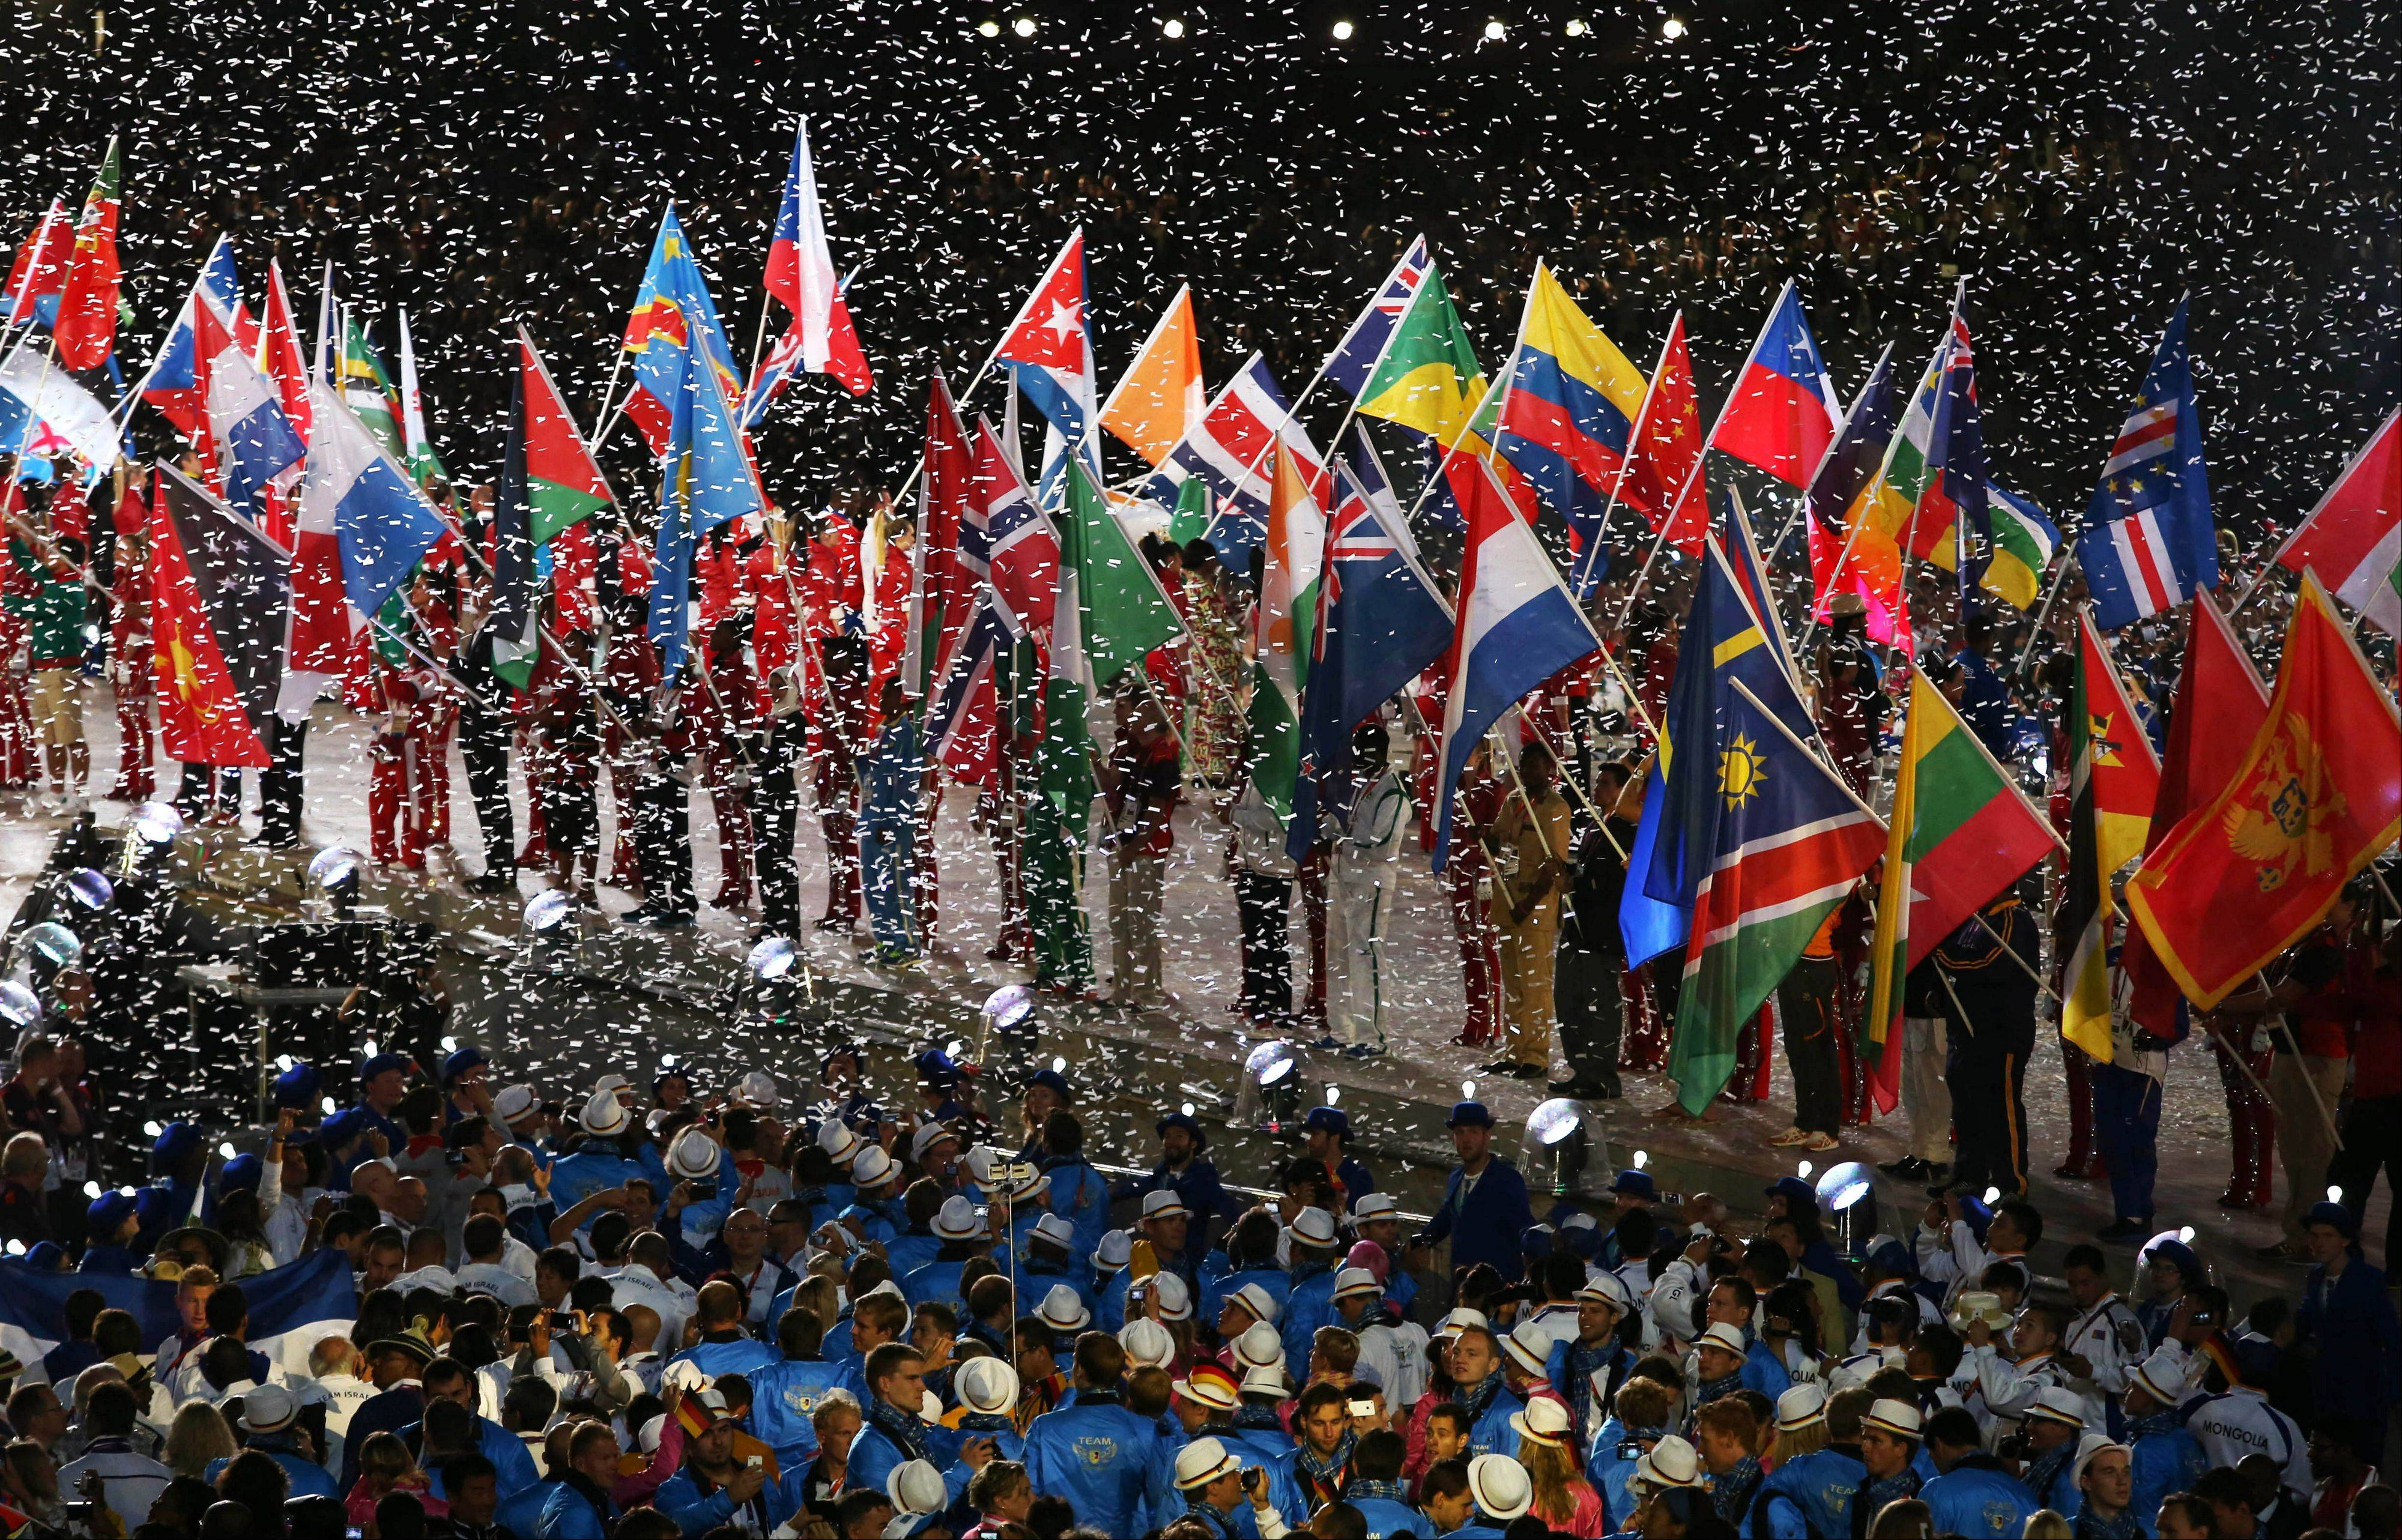 The Closing Ceremony at the 2012 Summer Olympics.